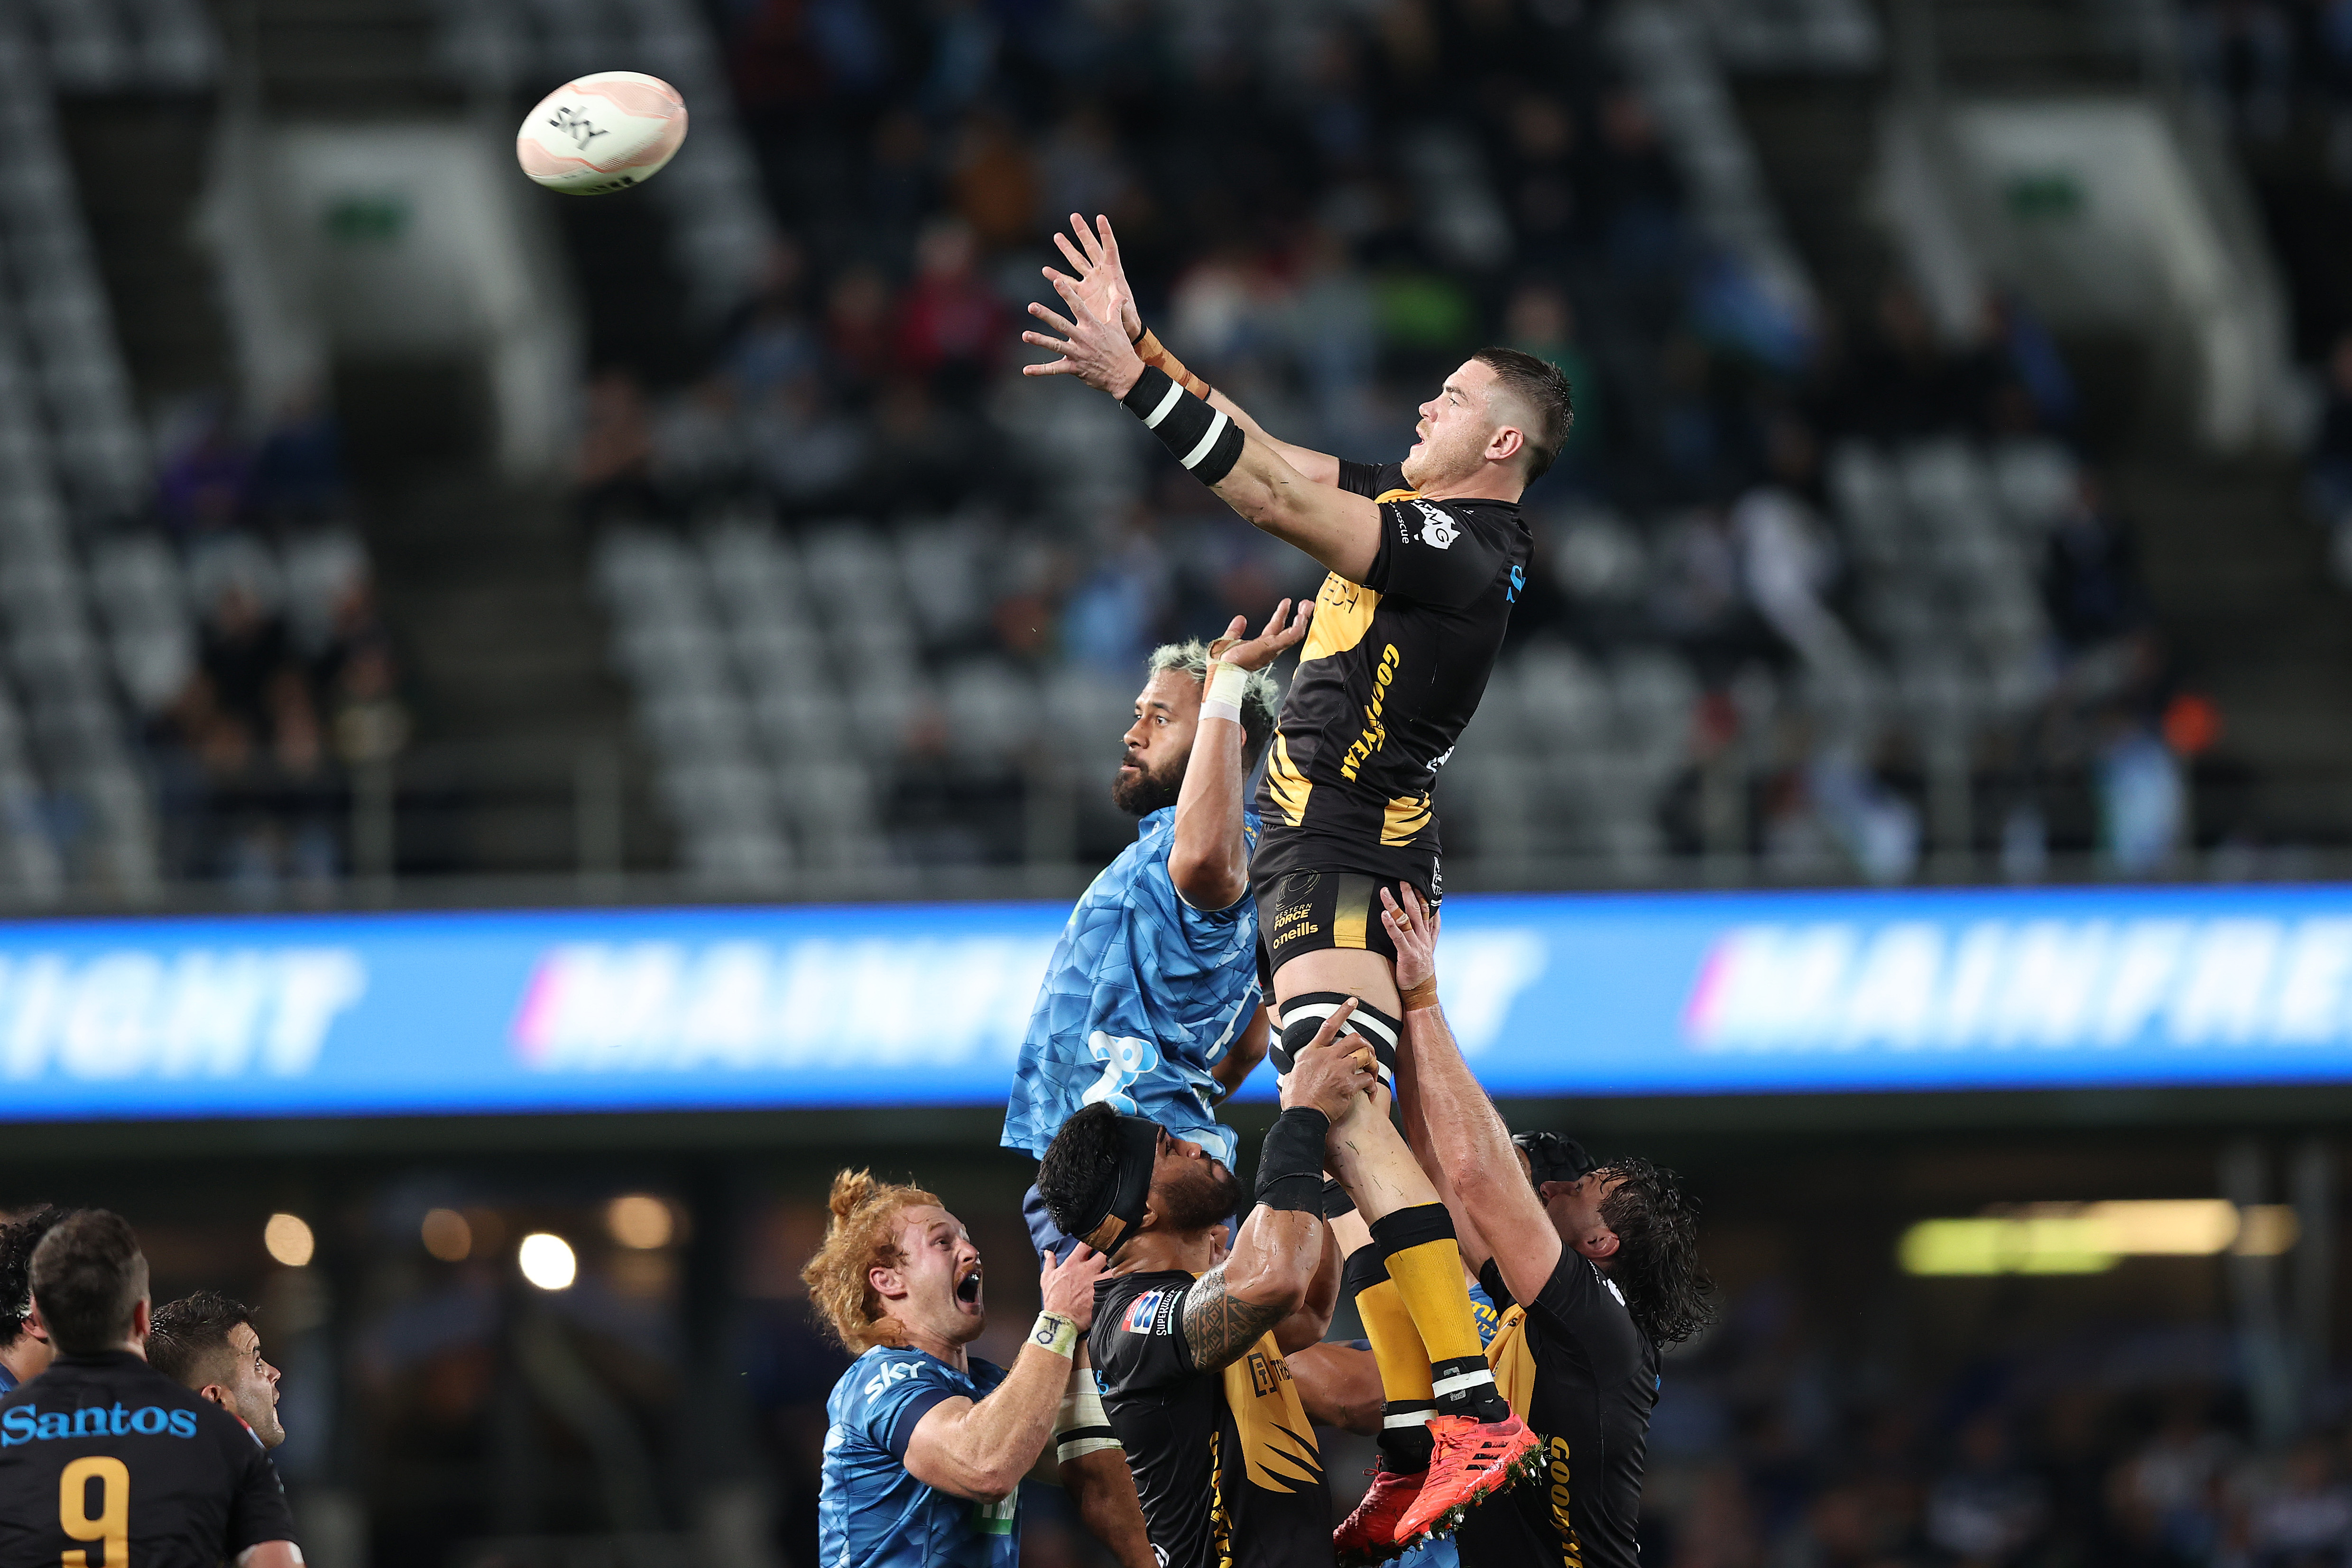 Fergus Lee-Warner up for a lineout steal